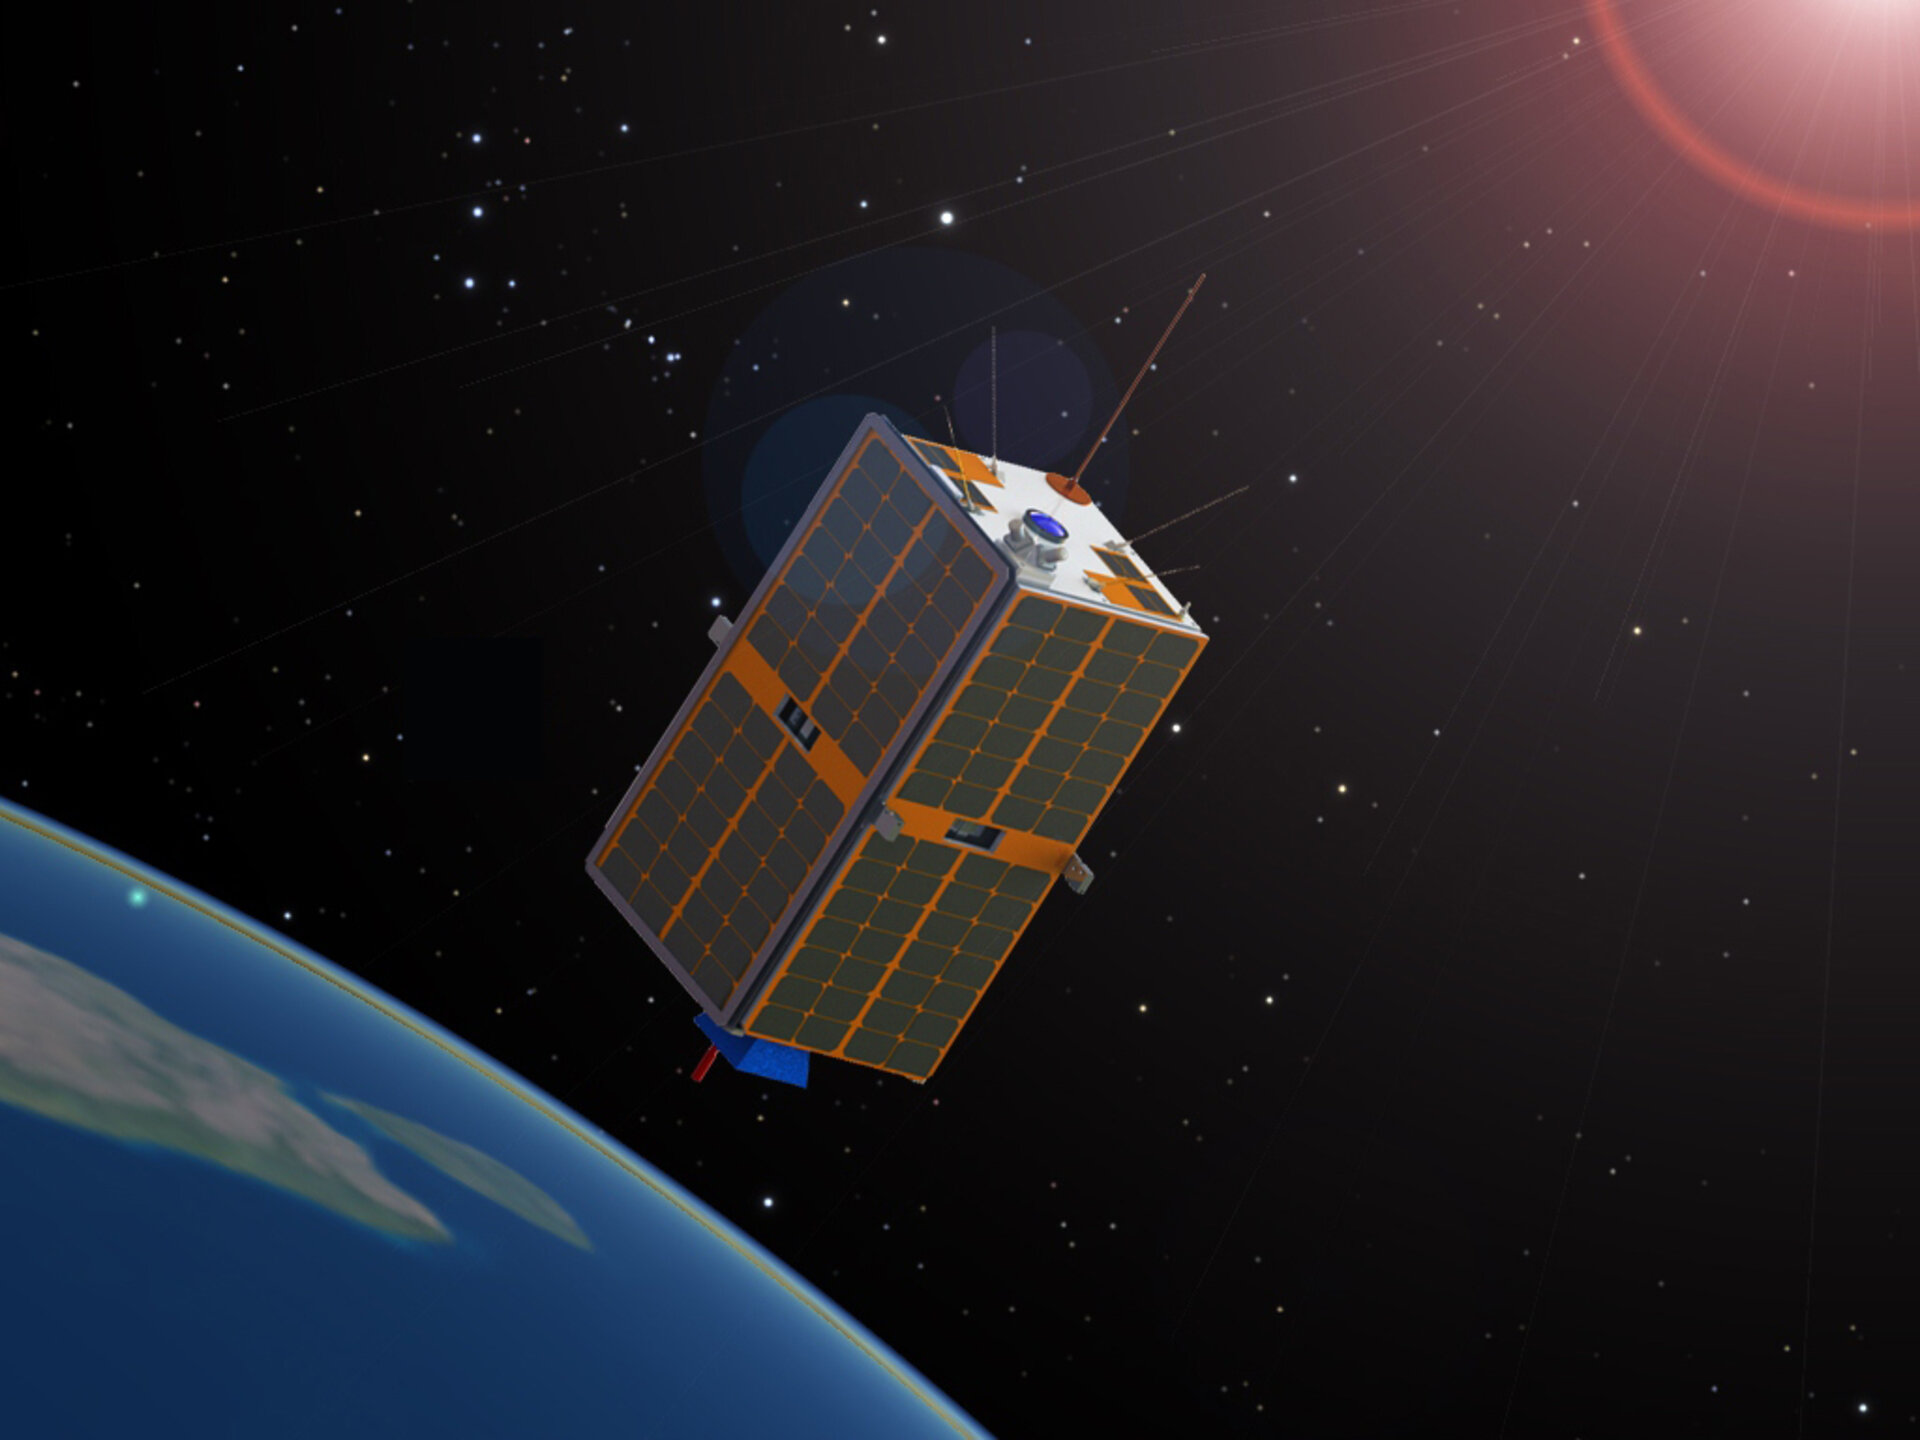 Artist's impression of ESEO deployed in orbit